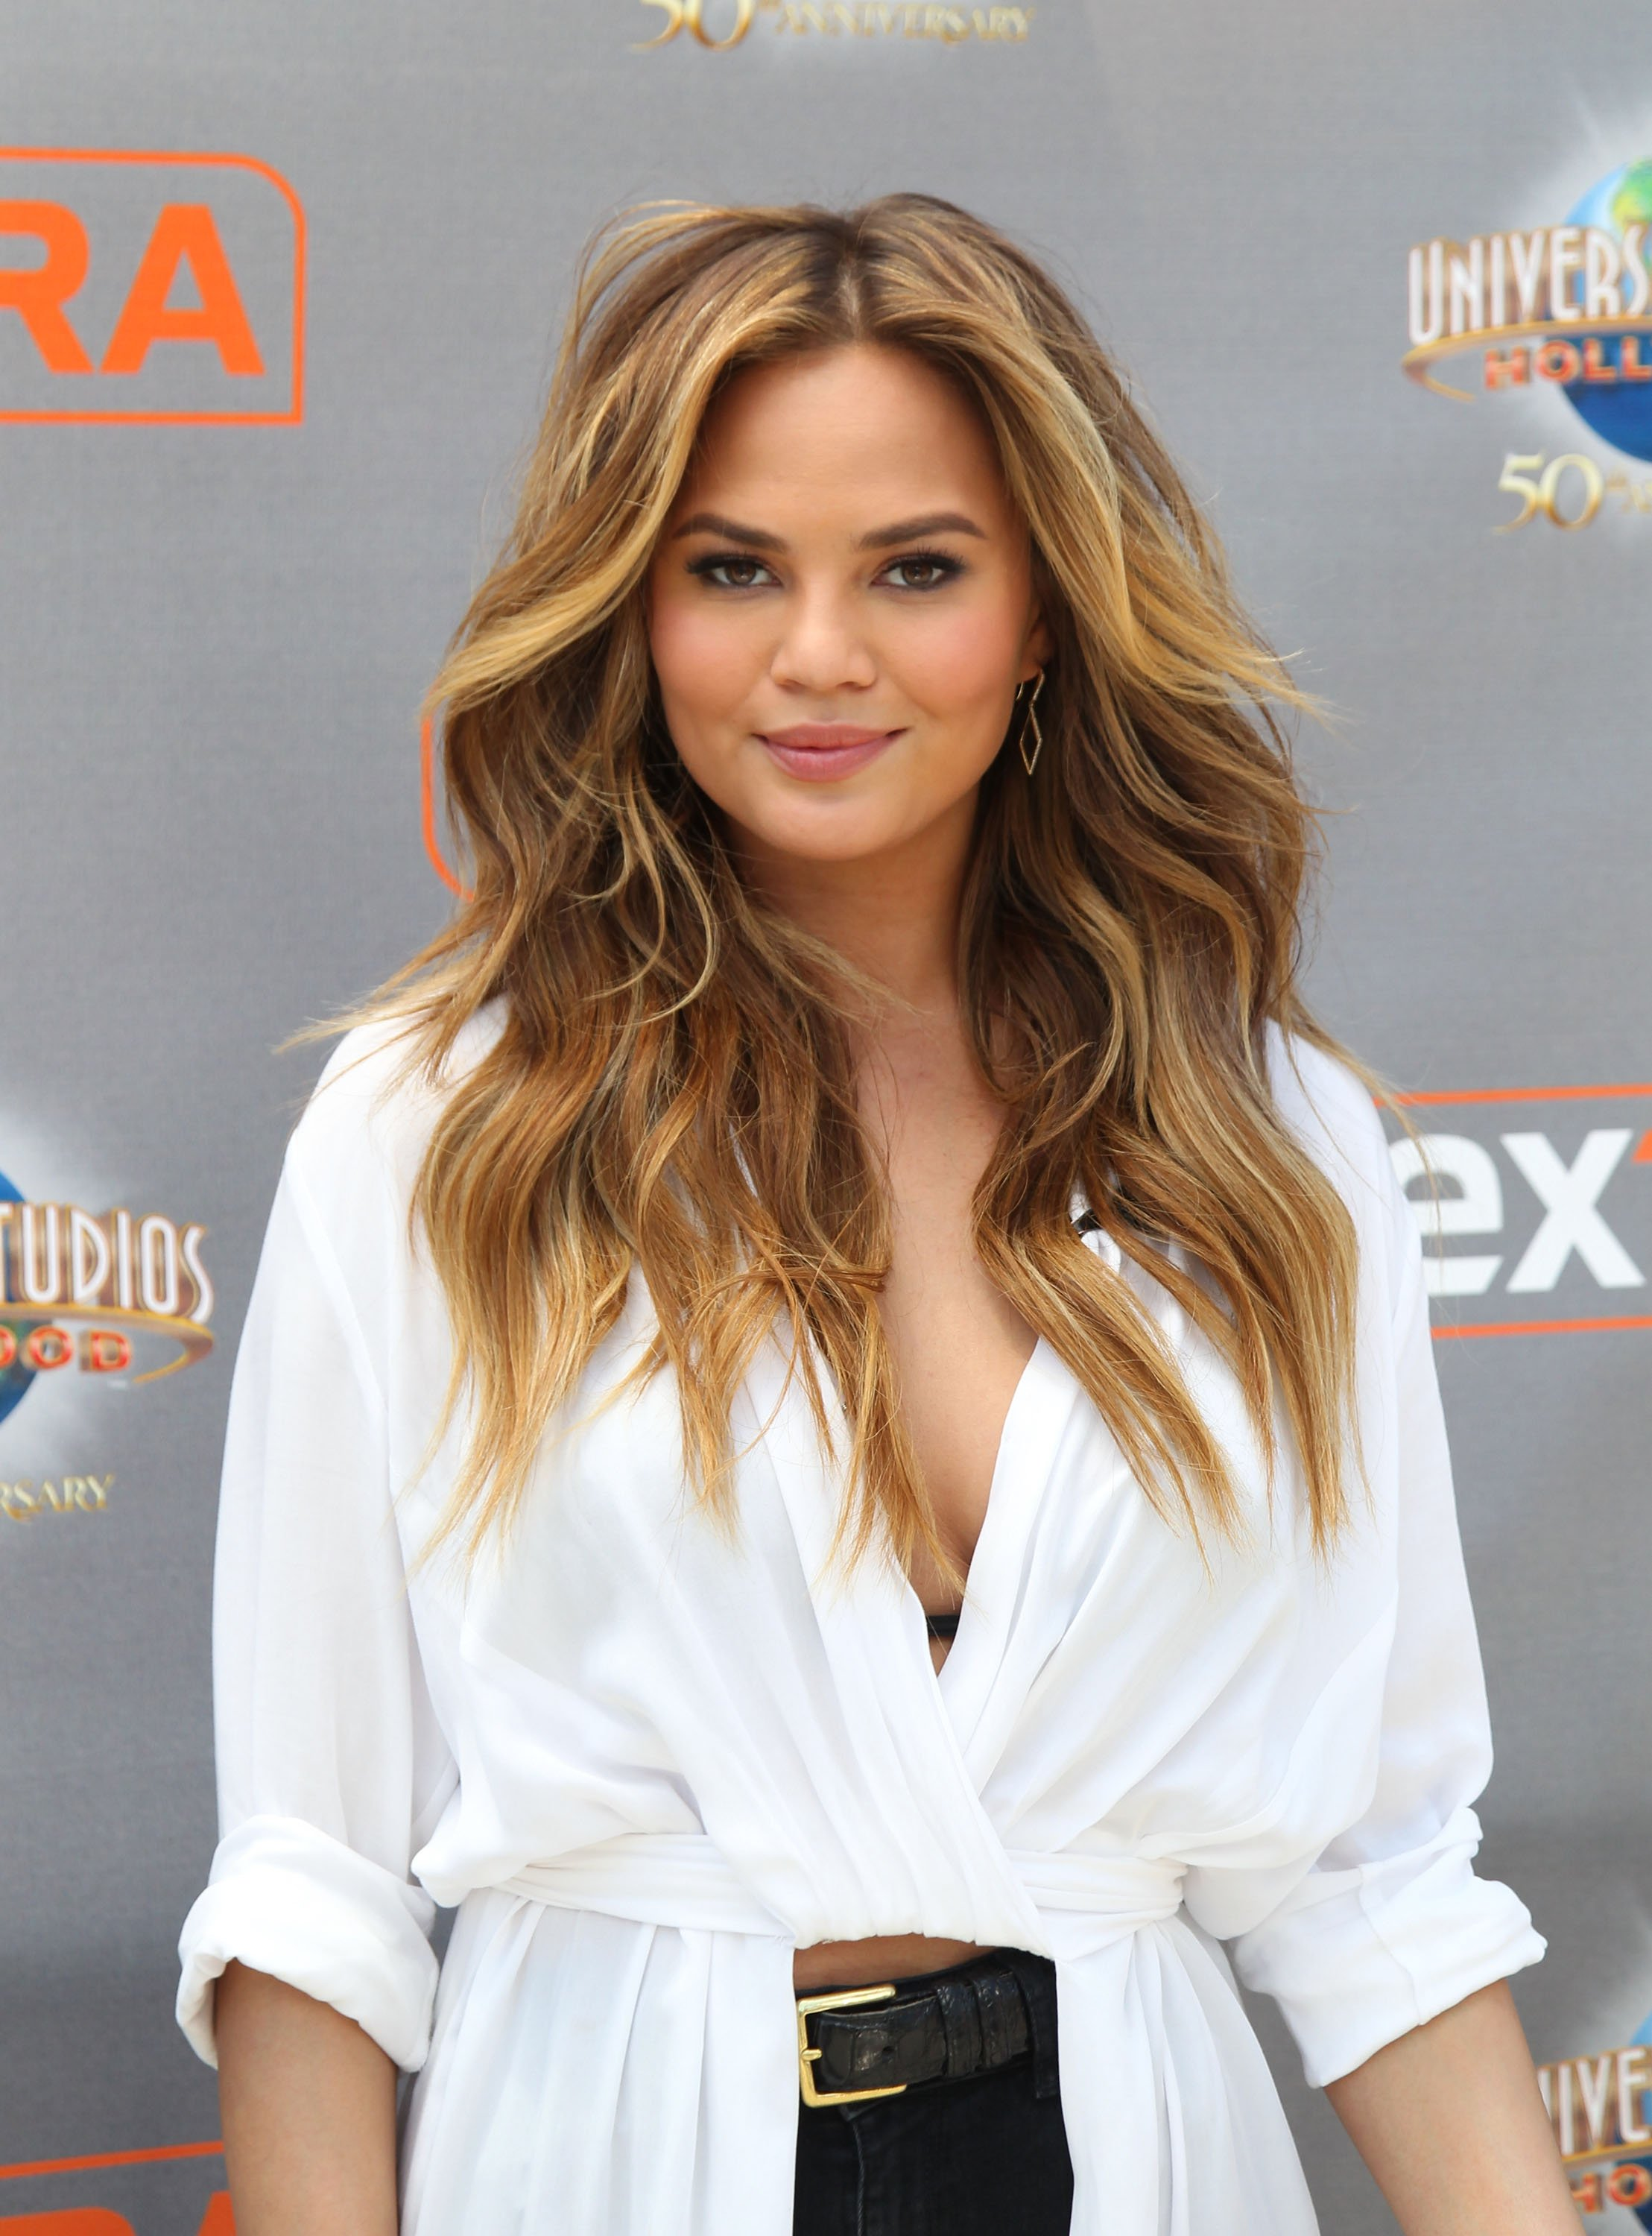 """Chrissy Teigen visits """"Extra"""" at Universal Studios Hollywood on May 20, 2015 in Universal City, California   Photo: Getty Images"""